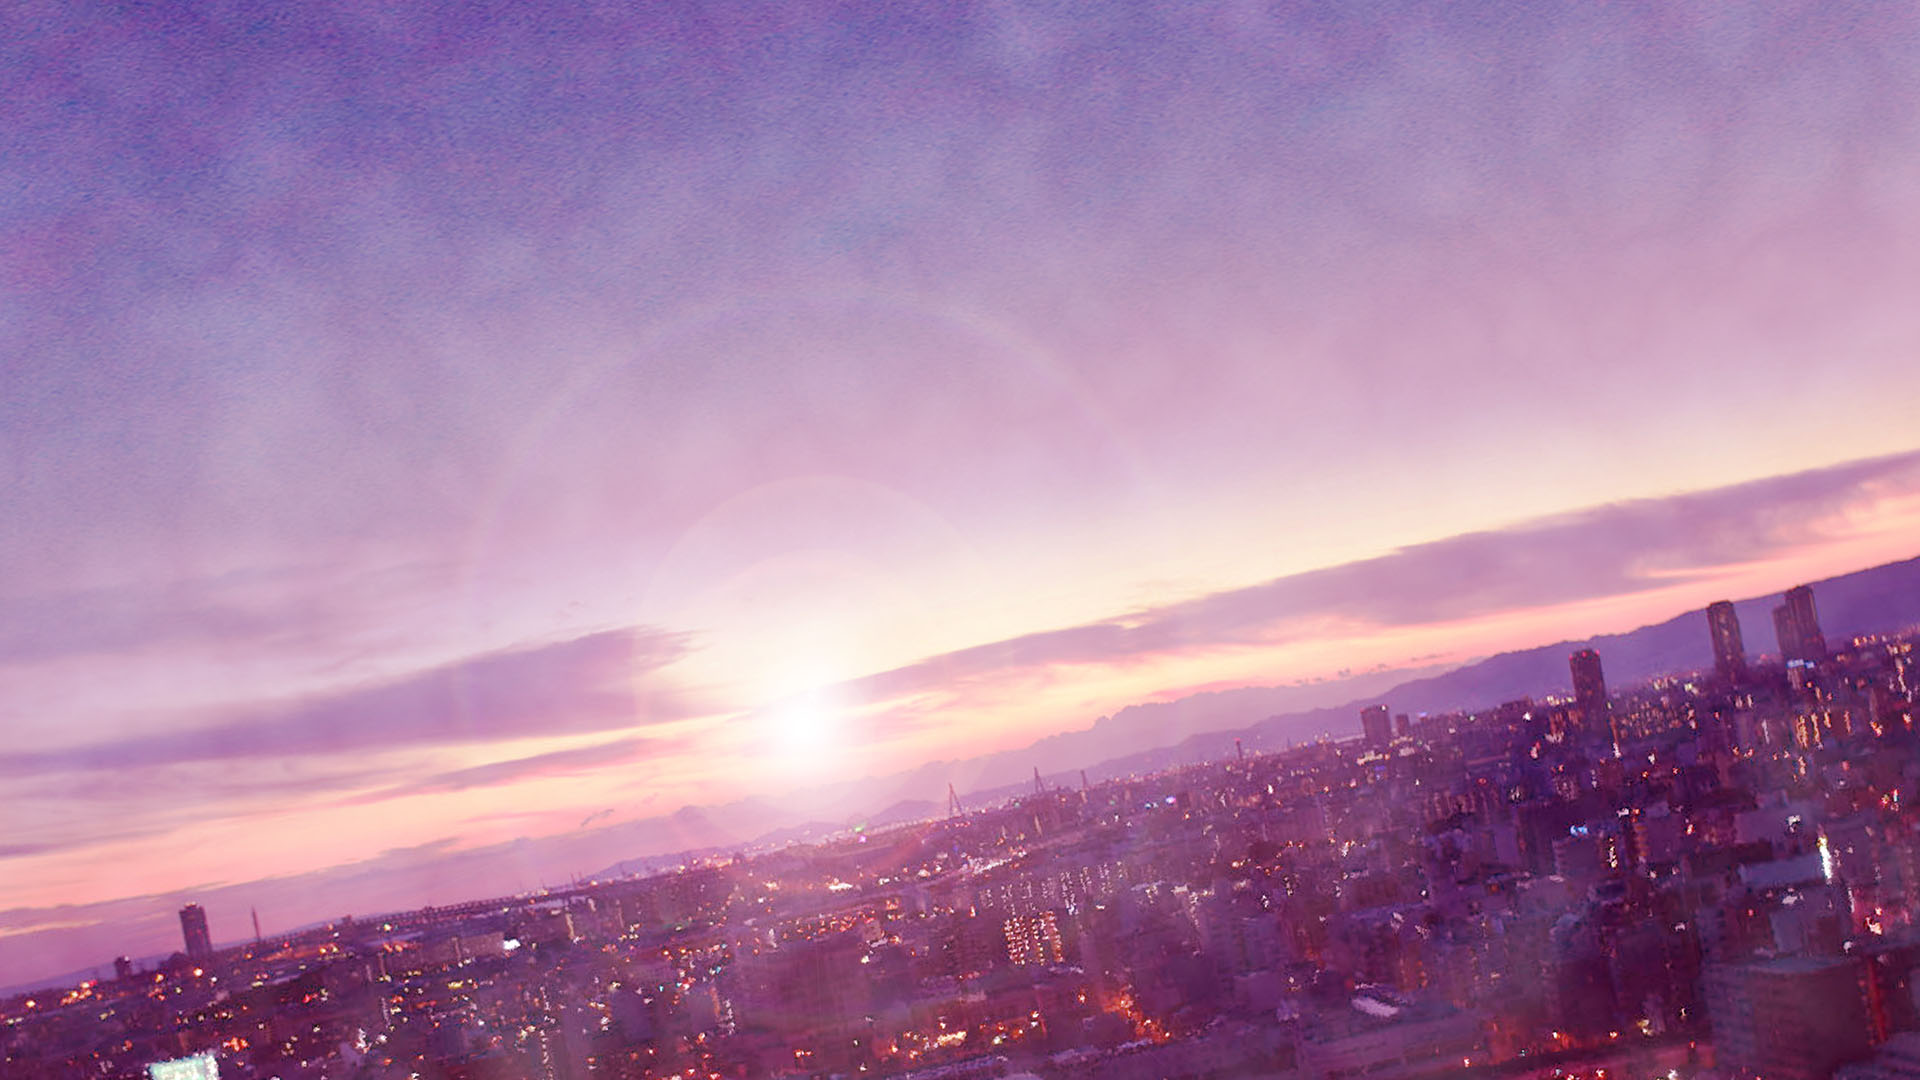 Anime scenery backgrounds cities